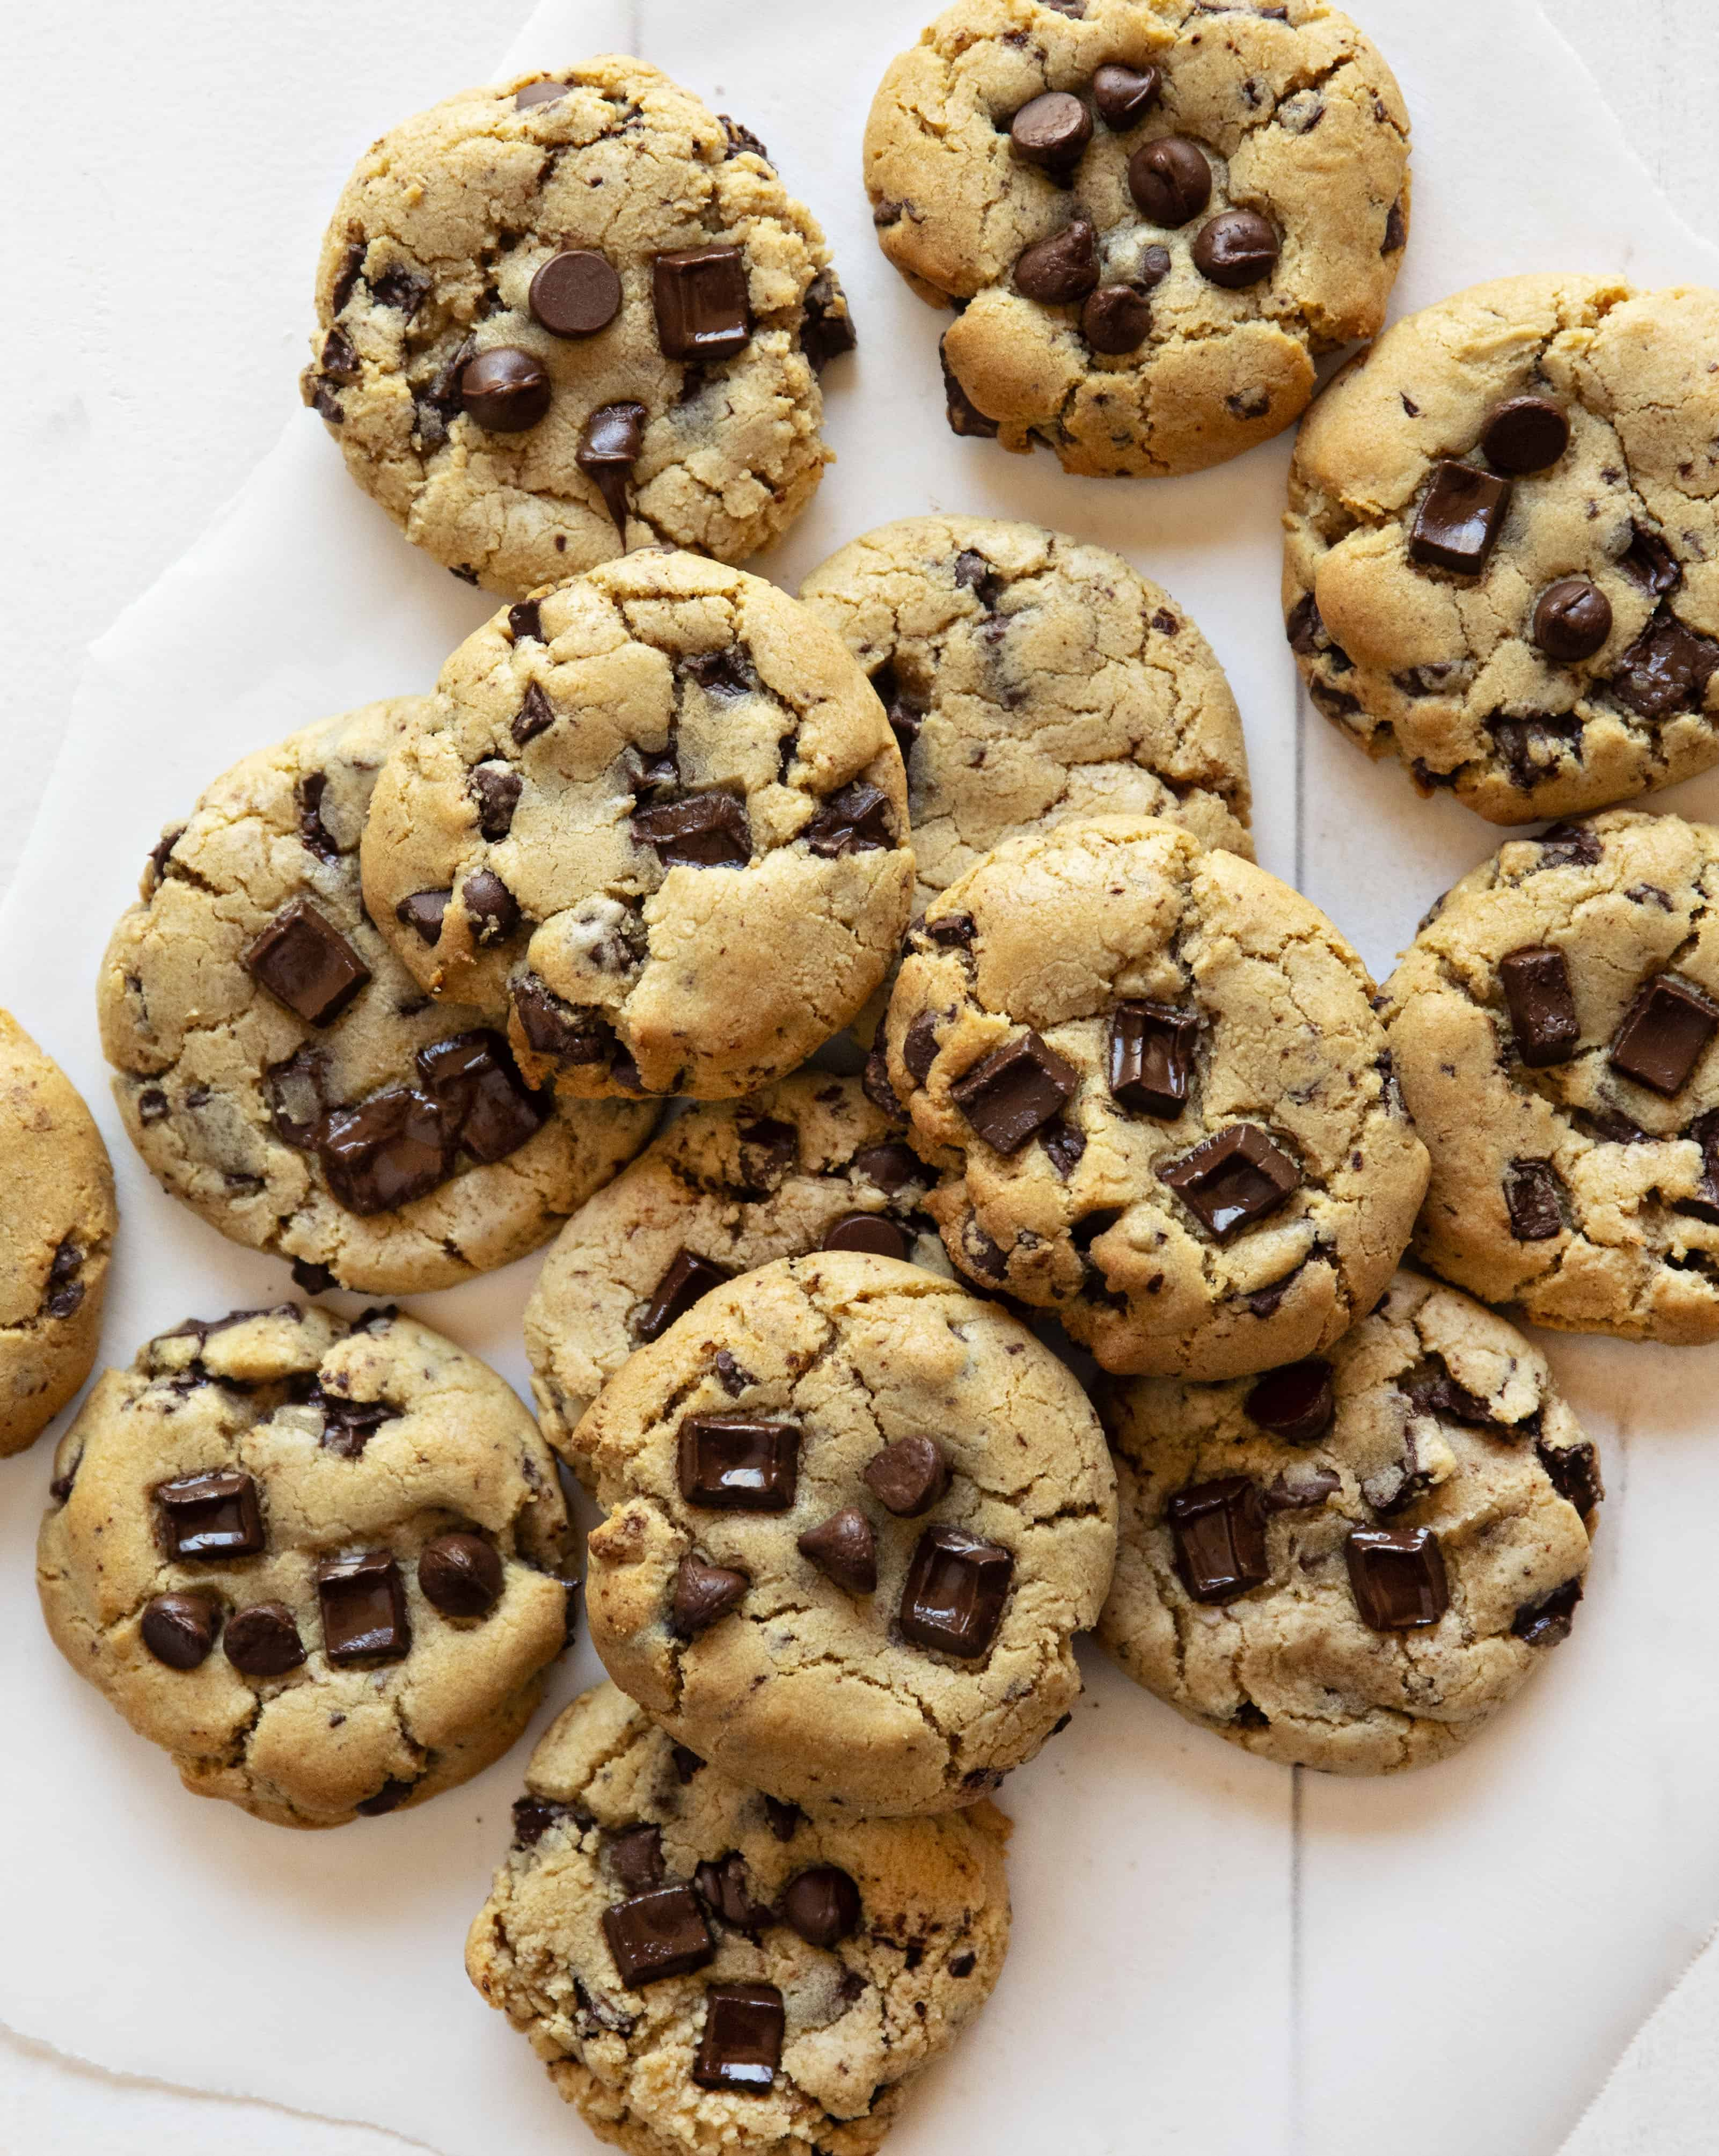 Chocolate Chip Cookies from Overhead